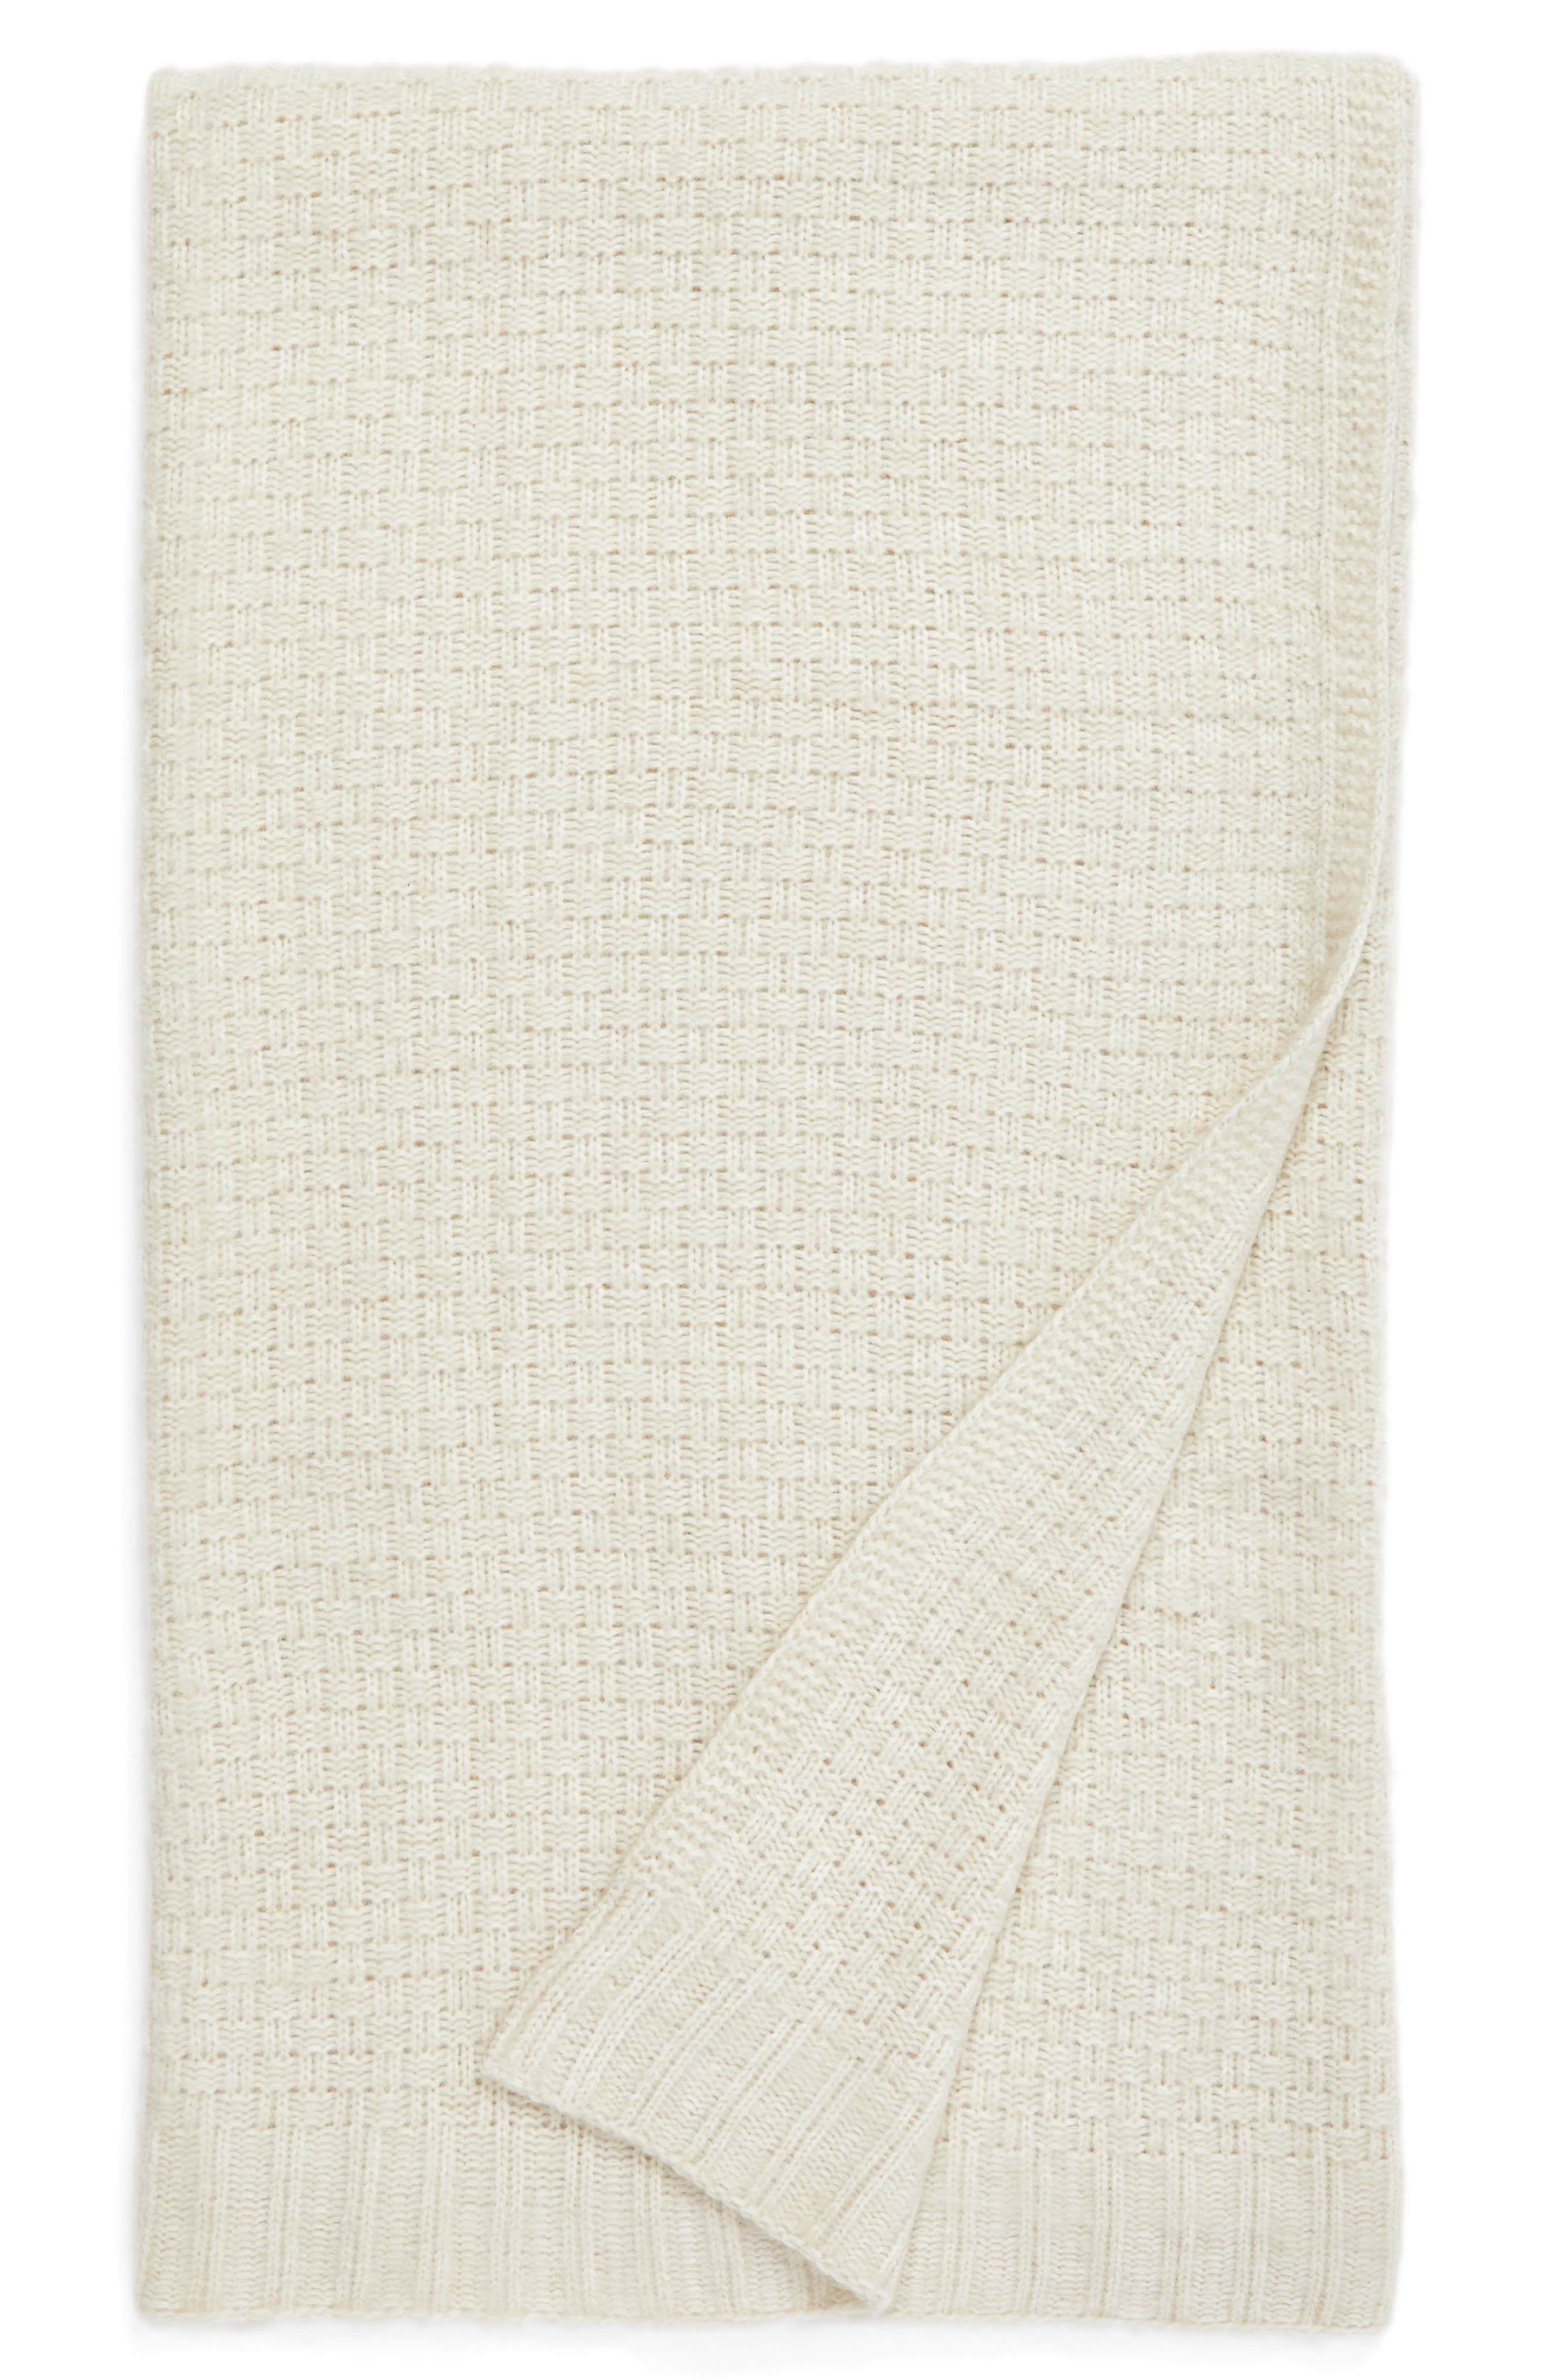 Brushed Seed Stitch Throw Blanket,                             Main thumbnail 1, color,                             Beige Oatmeal Heather